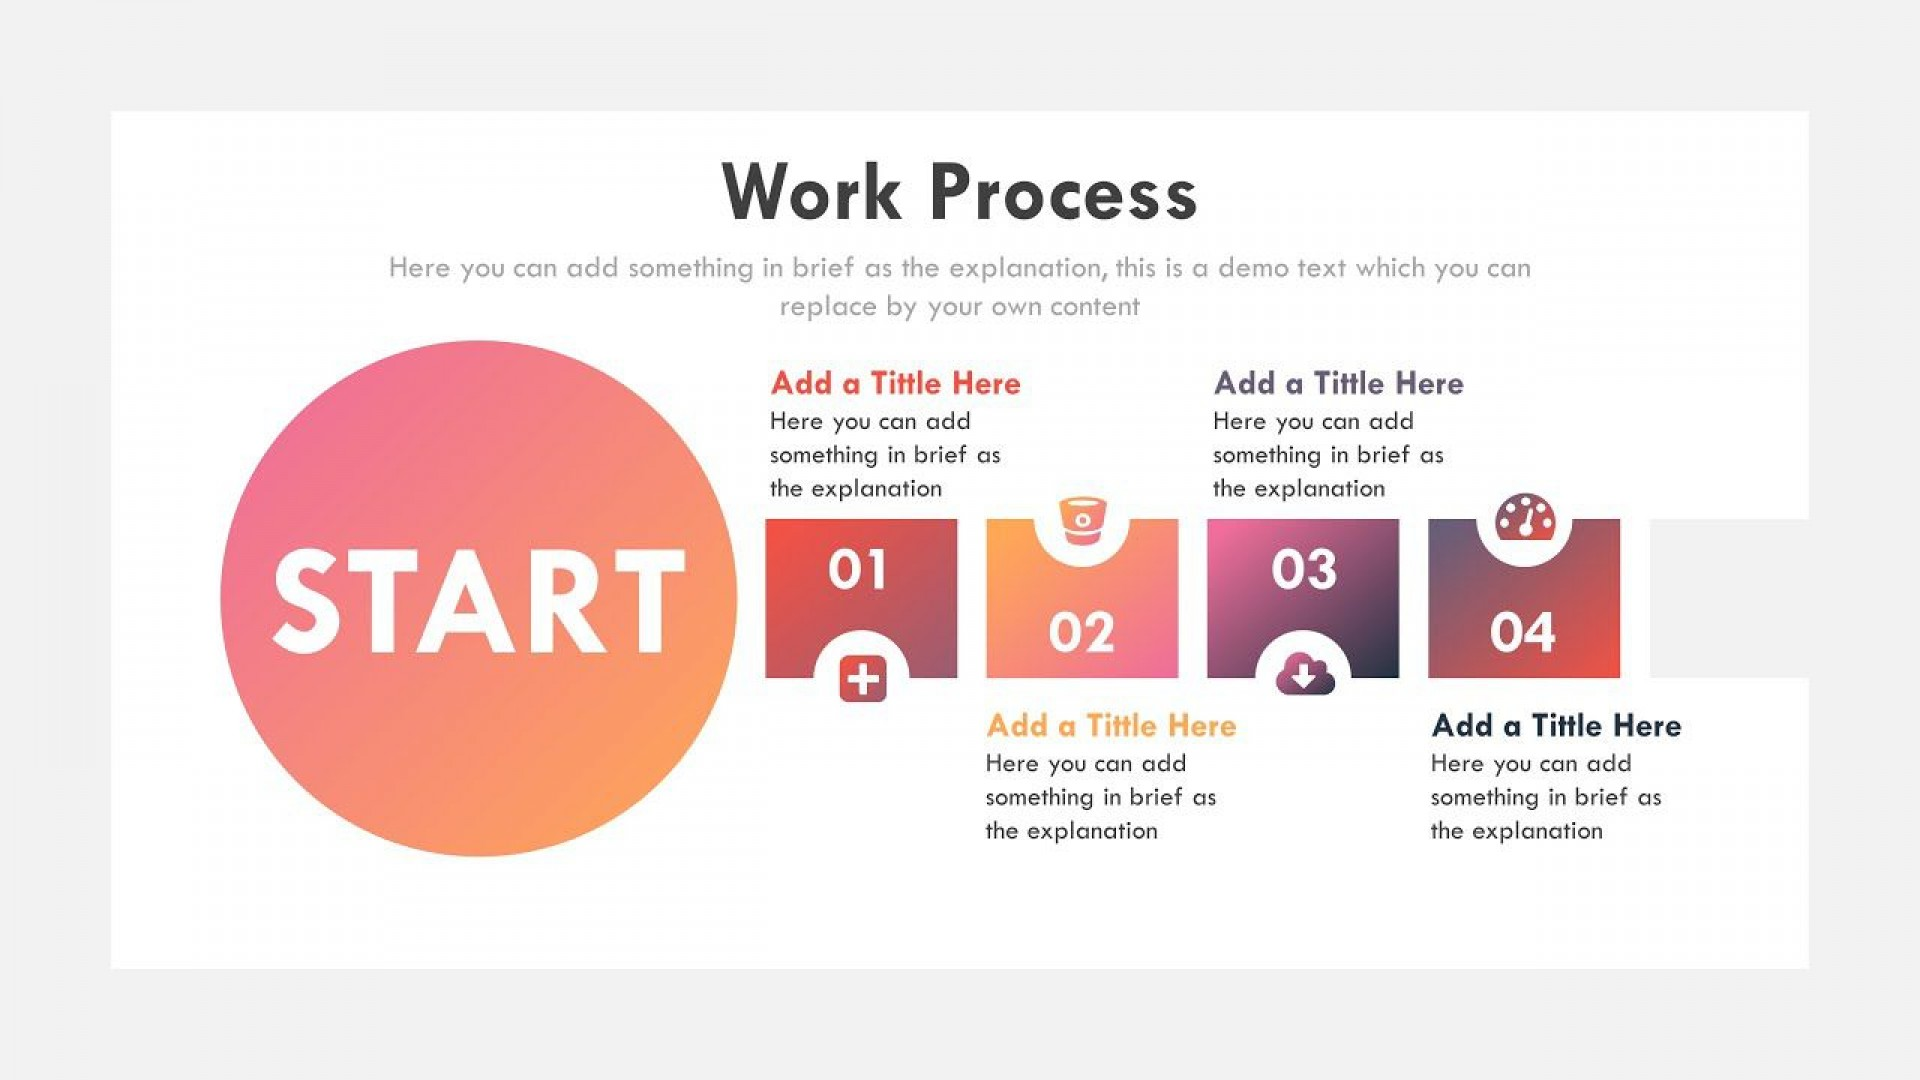 009 Impressive Animation Powerpoint Template Free Design  Animated Download 2019 20101920